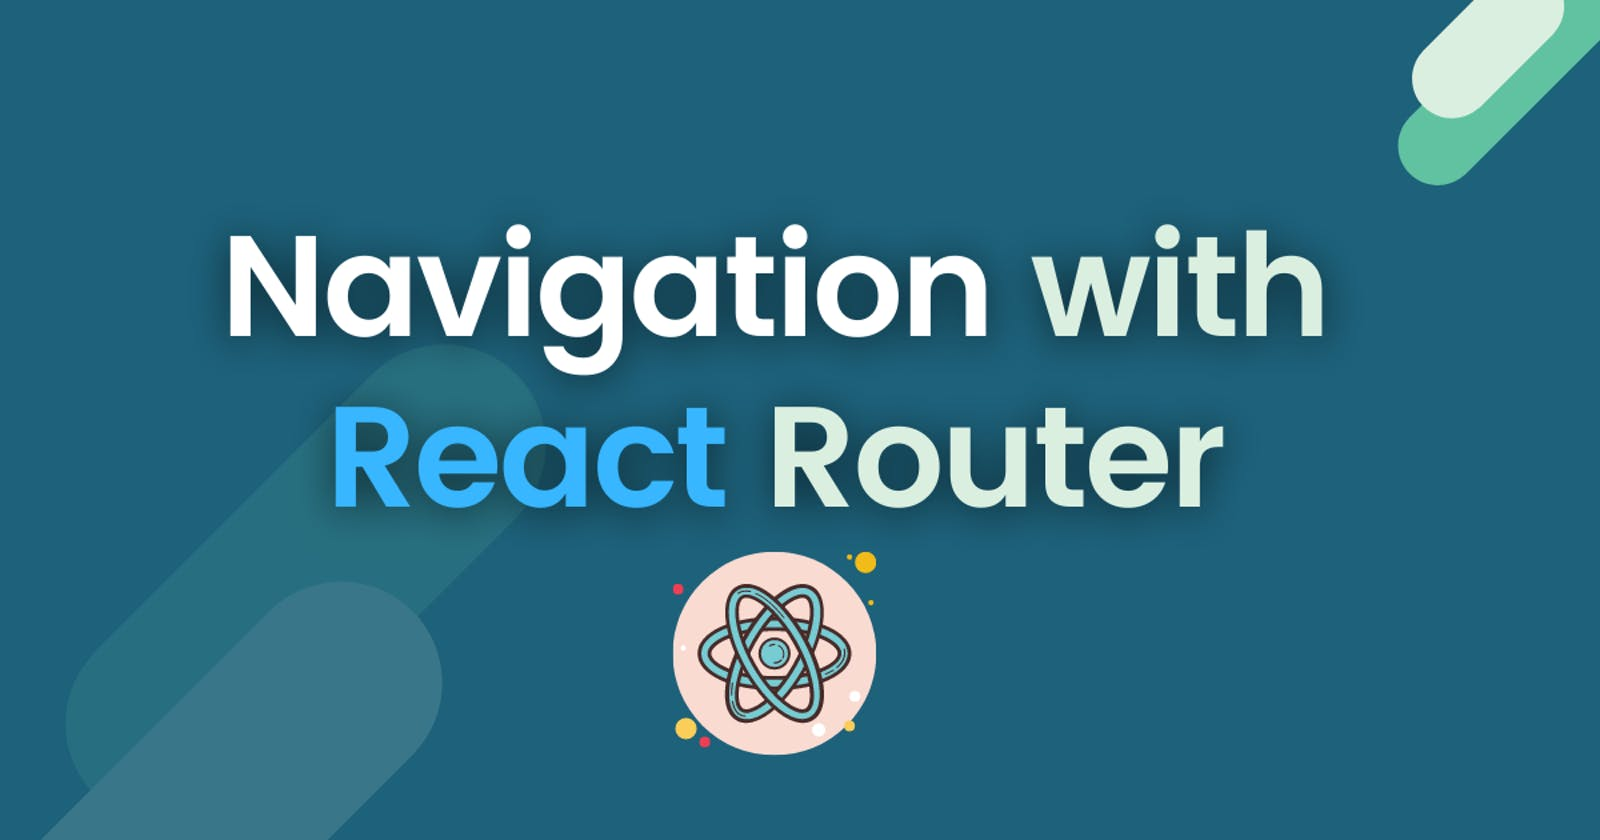 Navigation with React Router